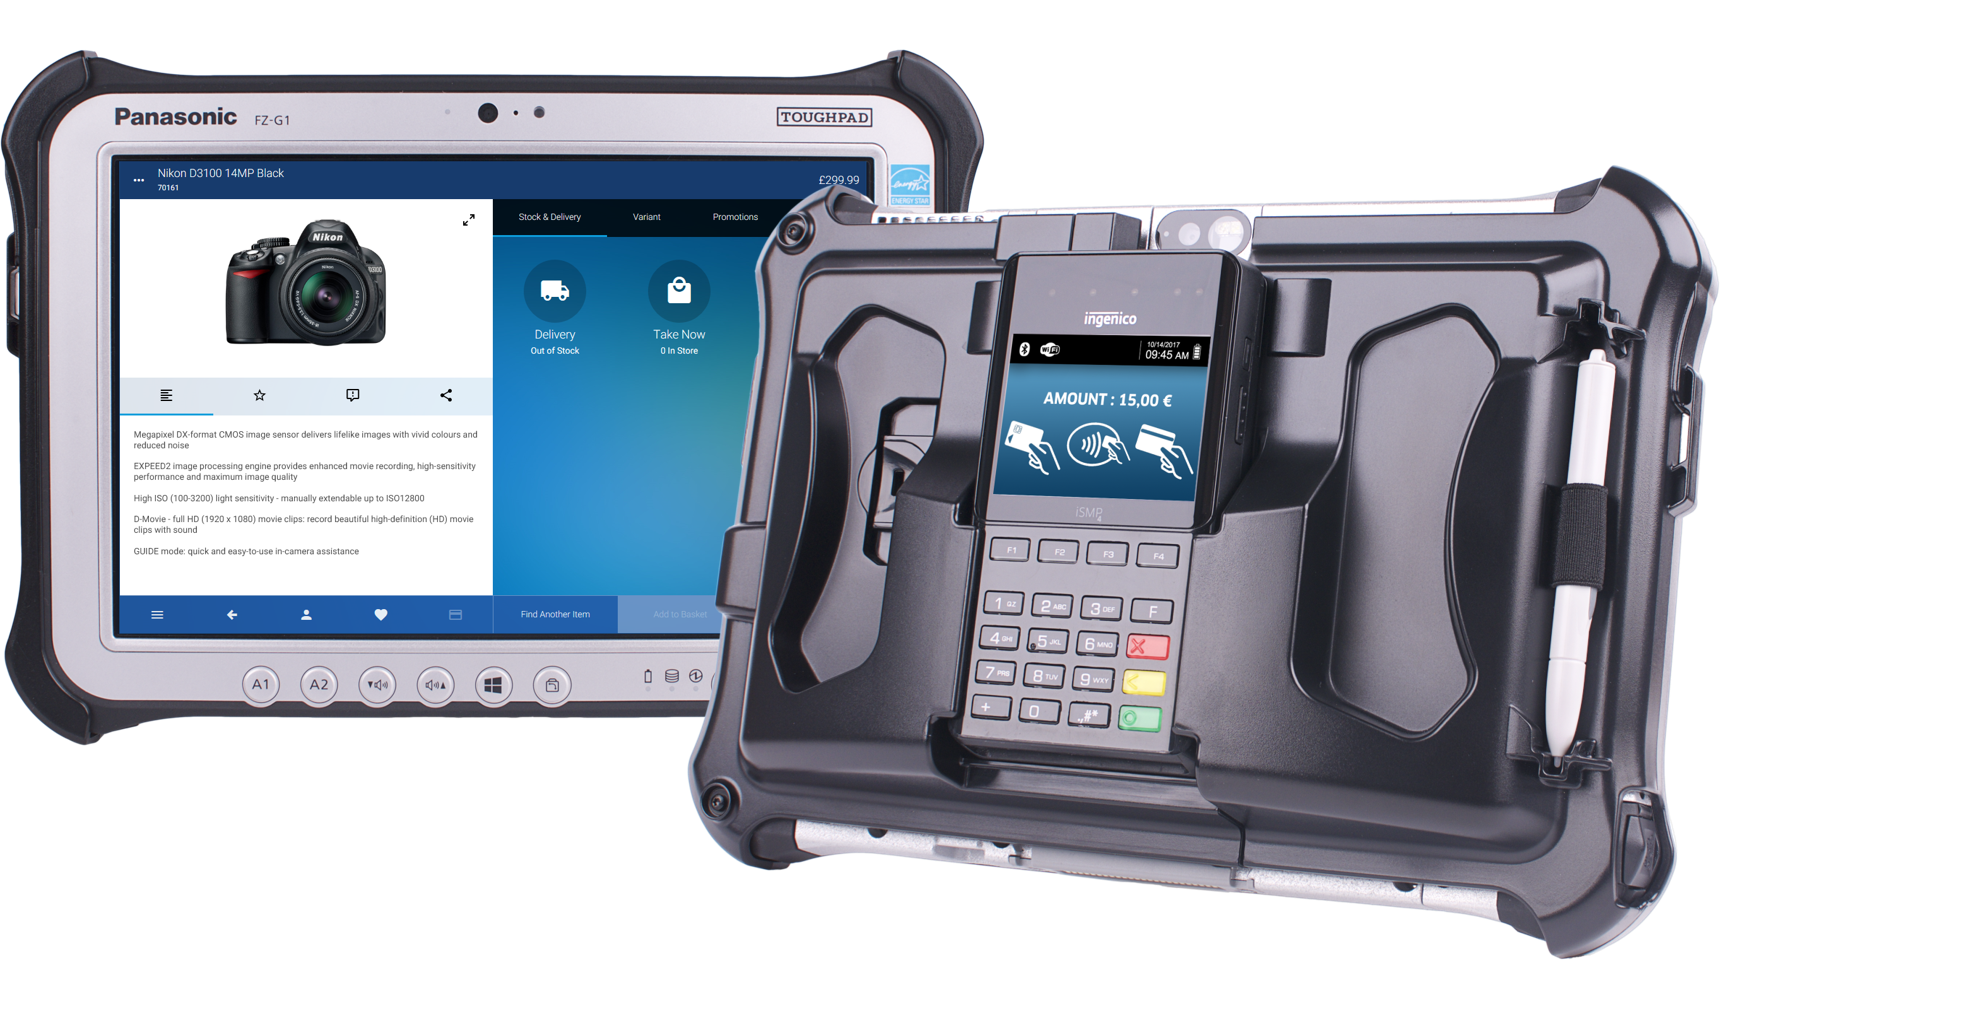 Panasonic introduces the first in a range of integrated Mobile Point